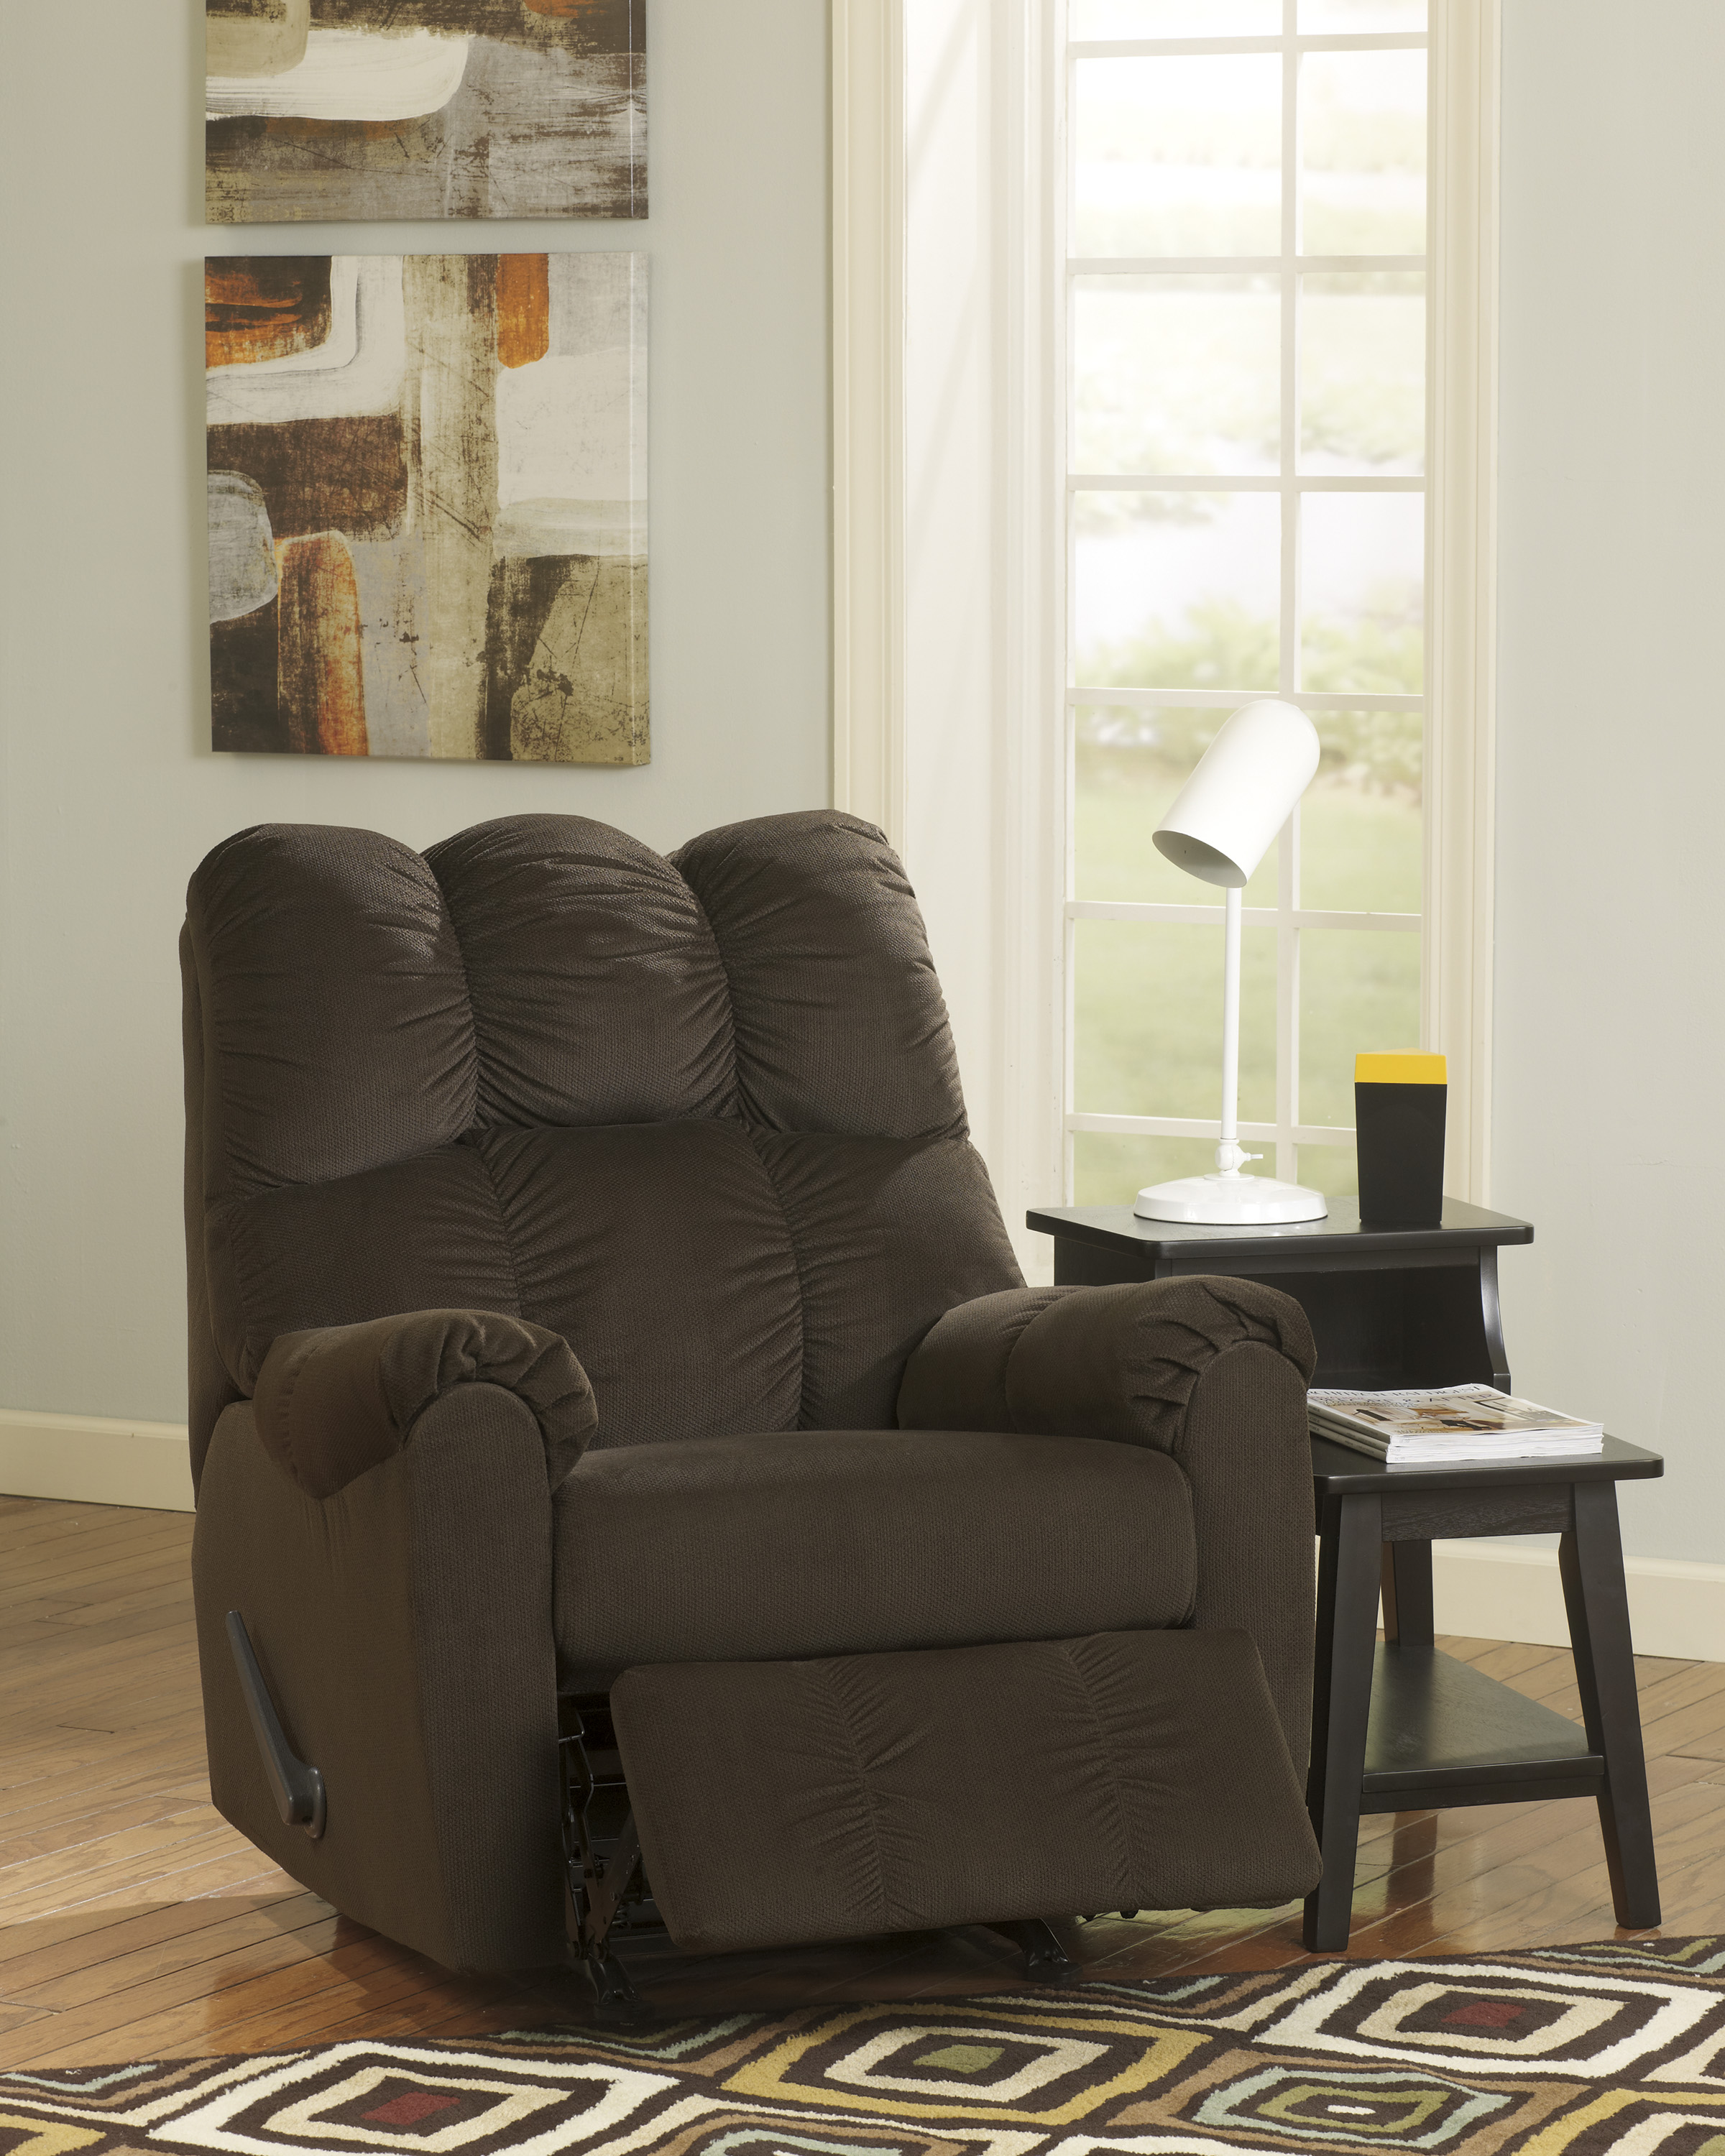 Raulo Chocolate Rocker Recliner : steelers rocker recliner - islam-shia.org